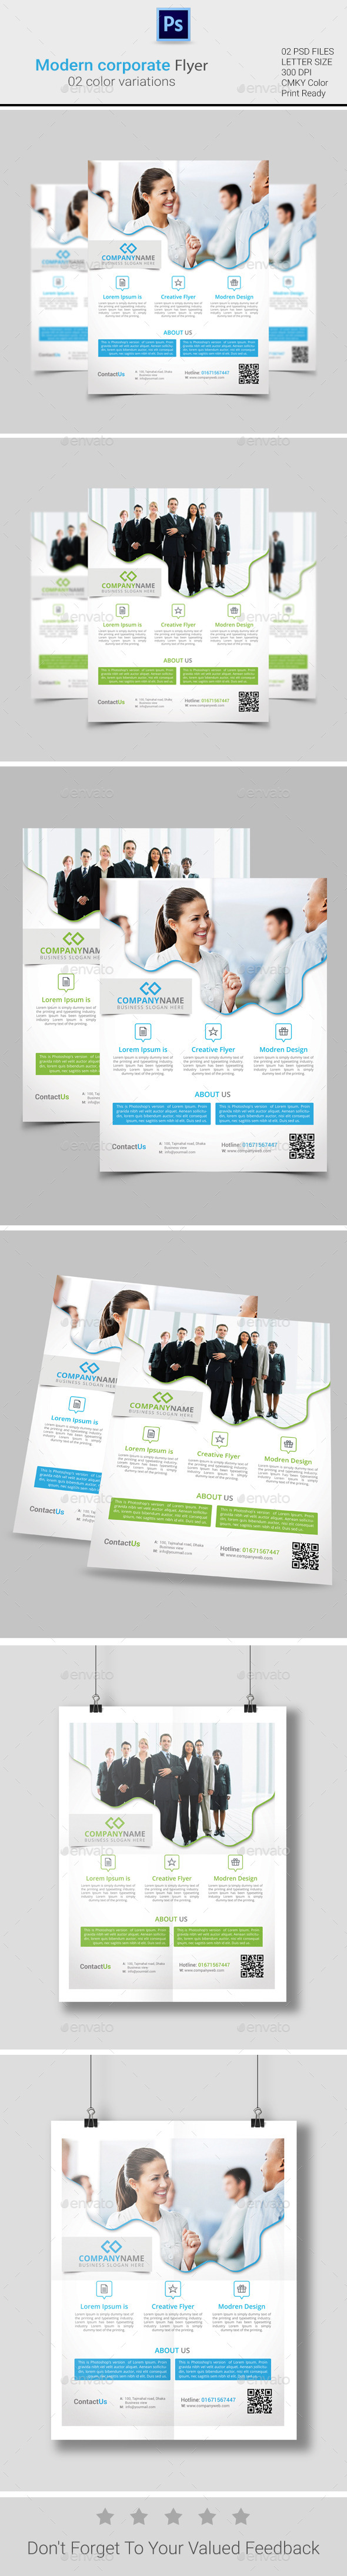 GraphicRiver Modern Corporate Flyer 10253539